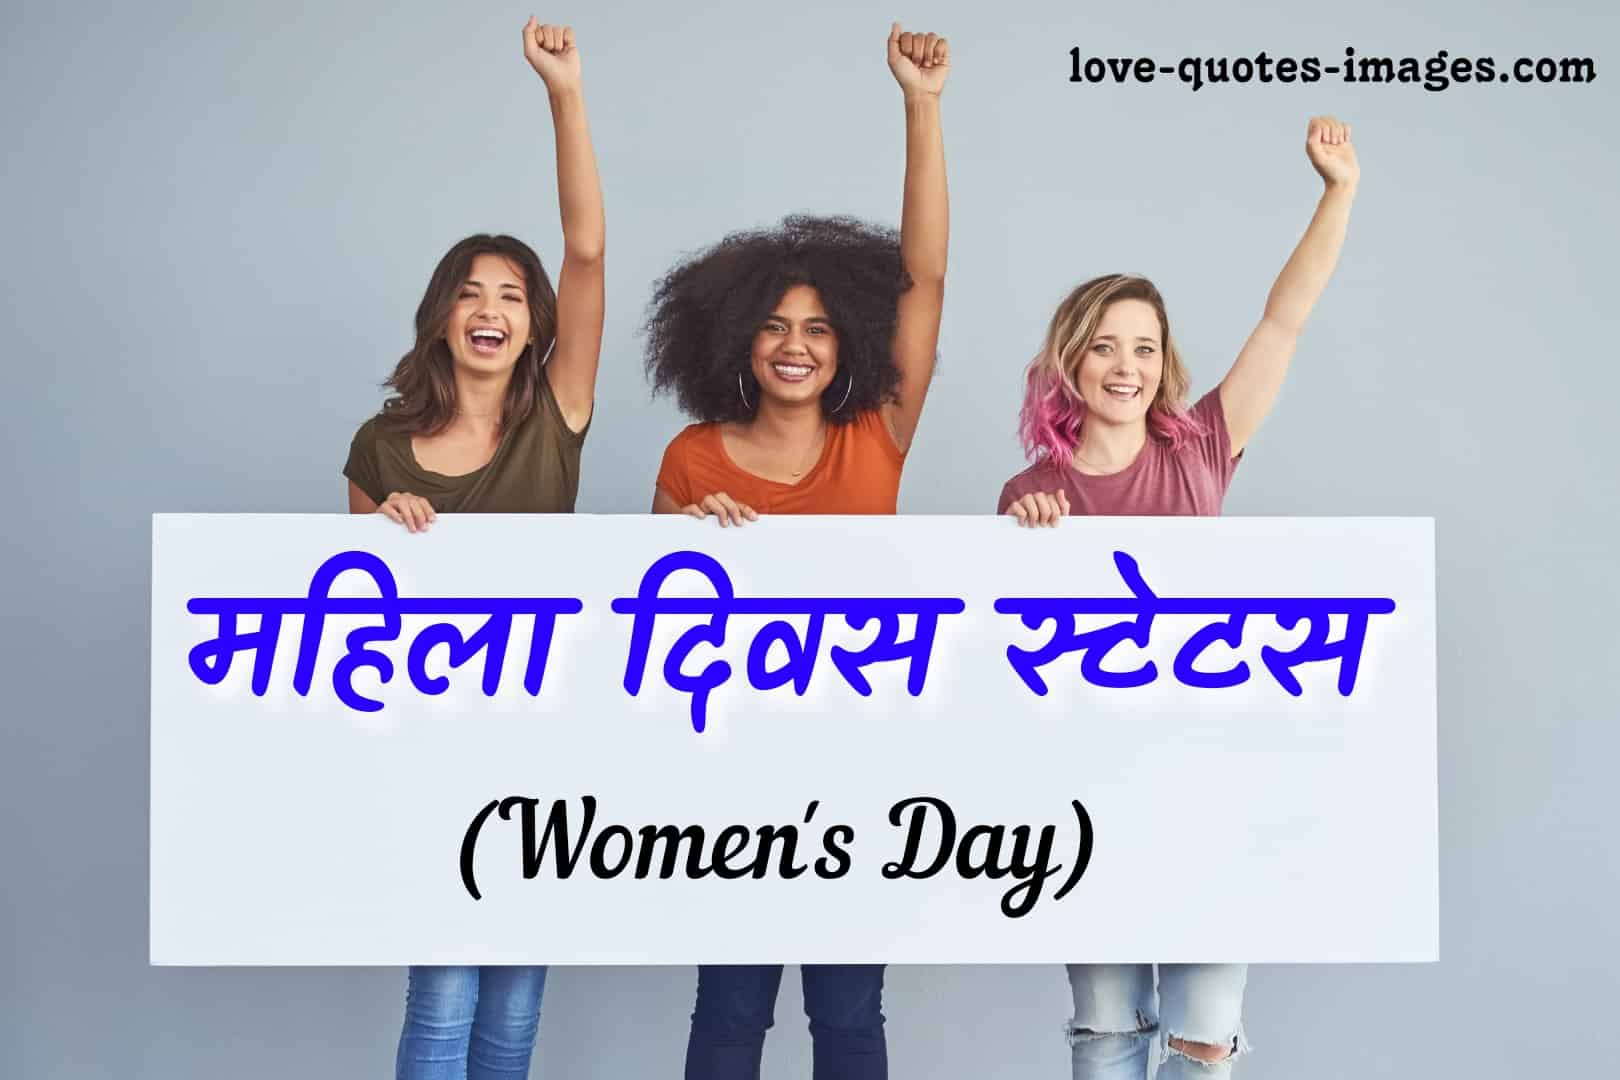 women's day quotes in hindi